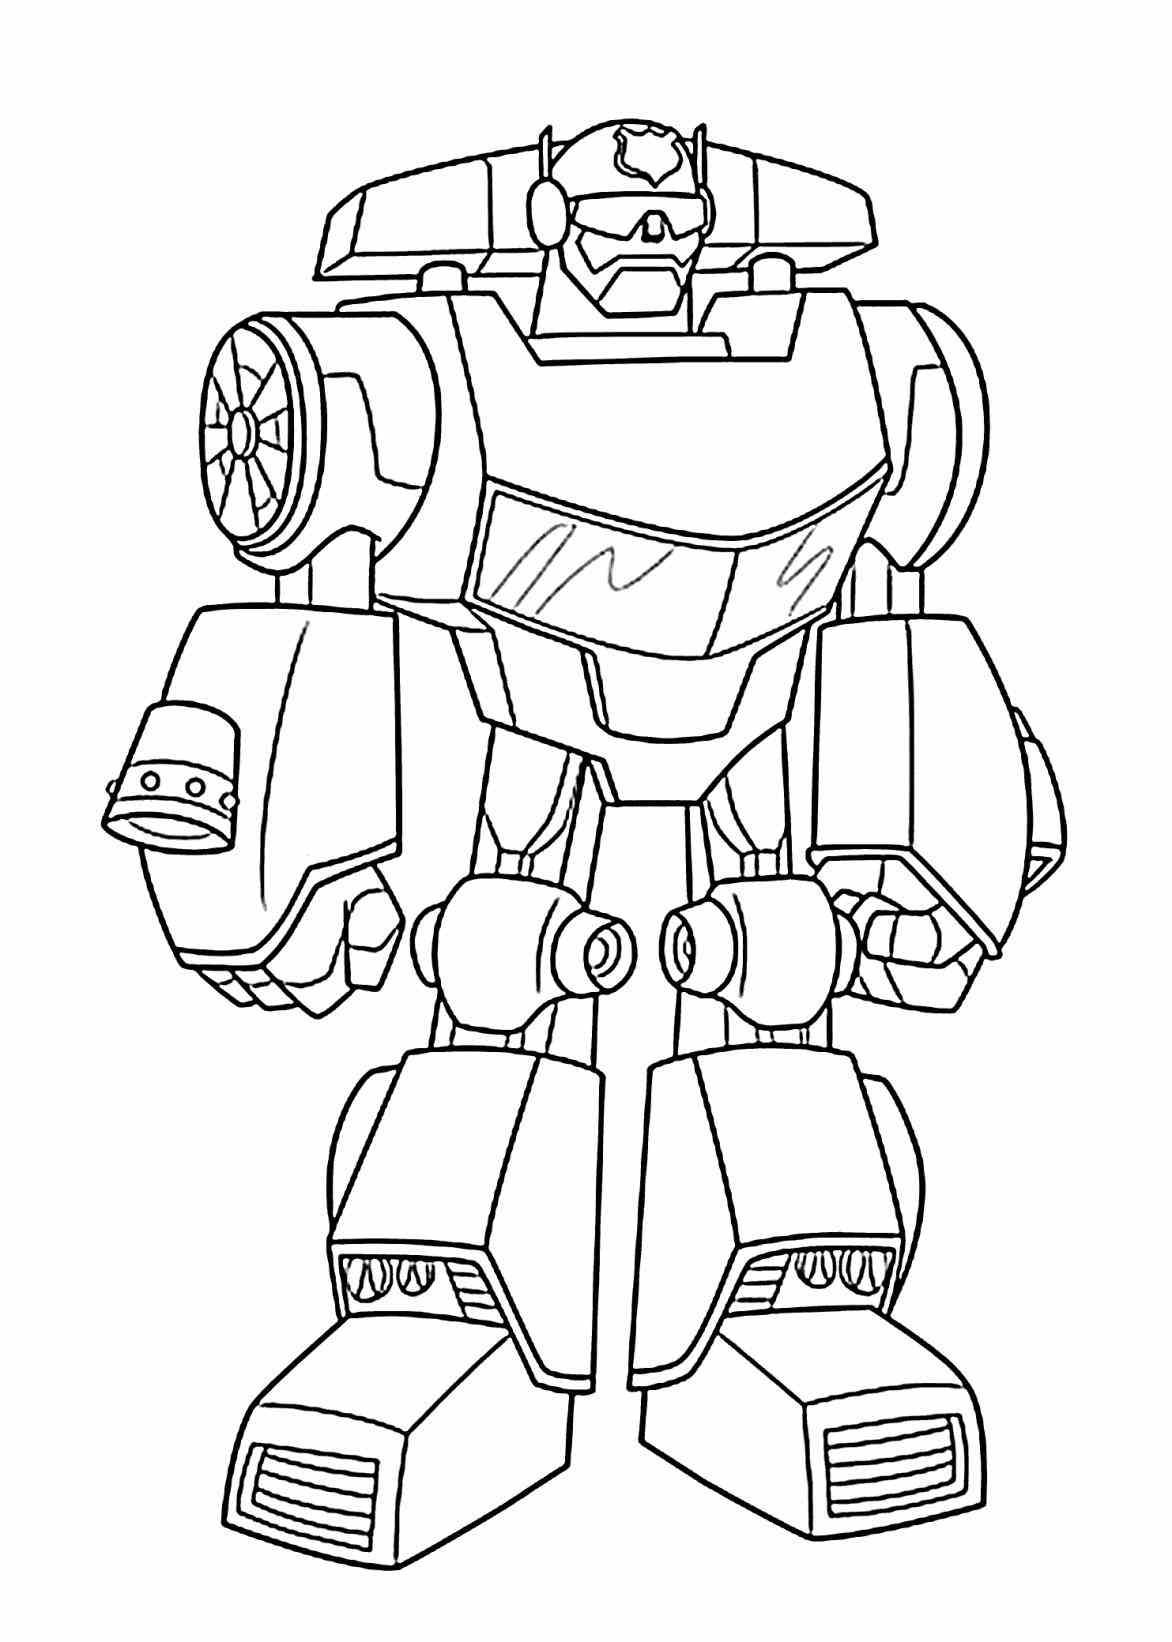 Bumble Bee Coloring Pages Transformers Bumblebee Page With Pictures Grig3 Org Transformers Coloring Pages Rescue Bots Birthday Party Rescue Bots Birthday